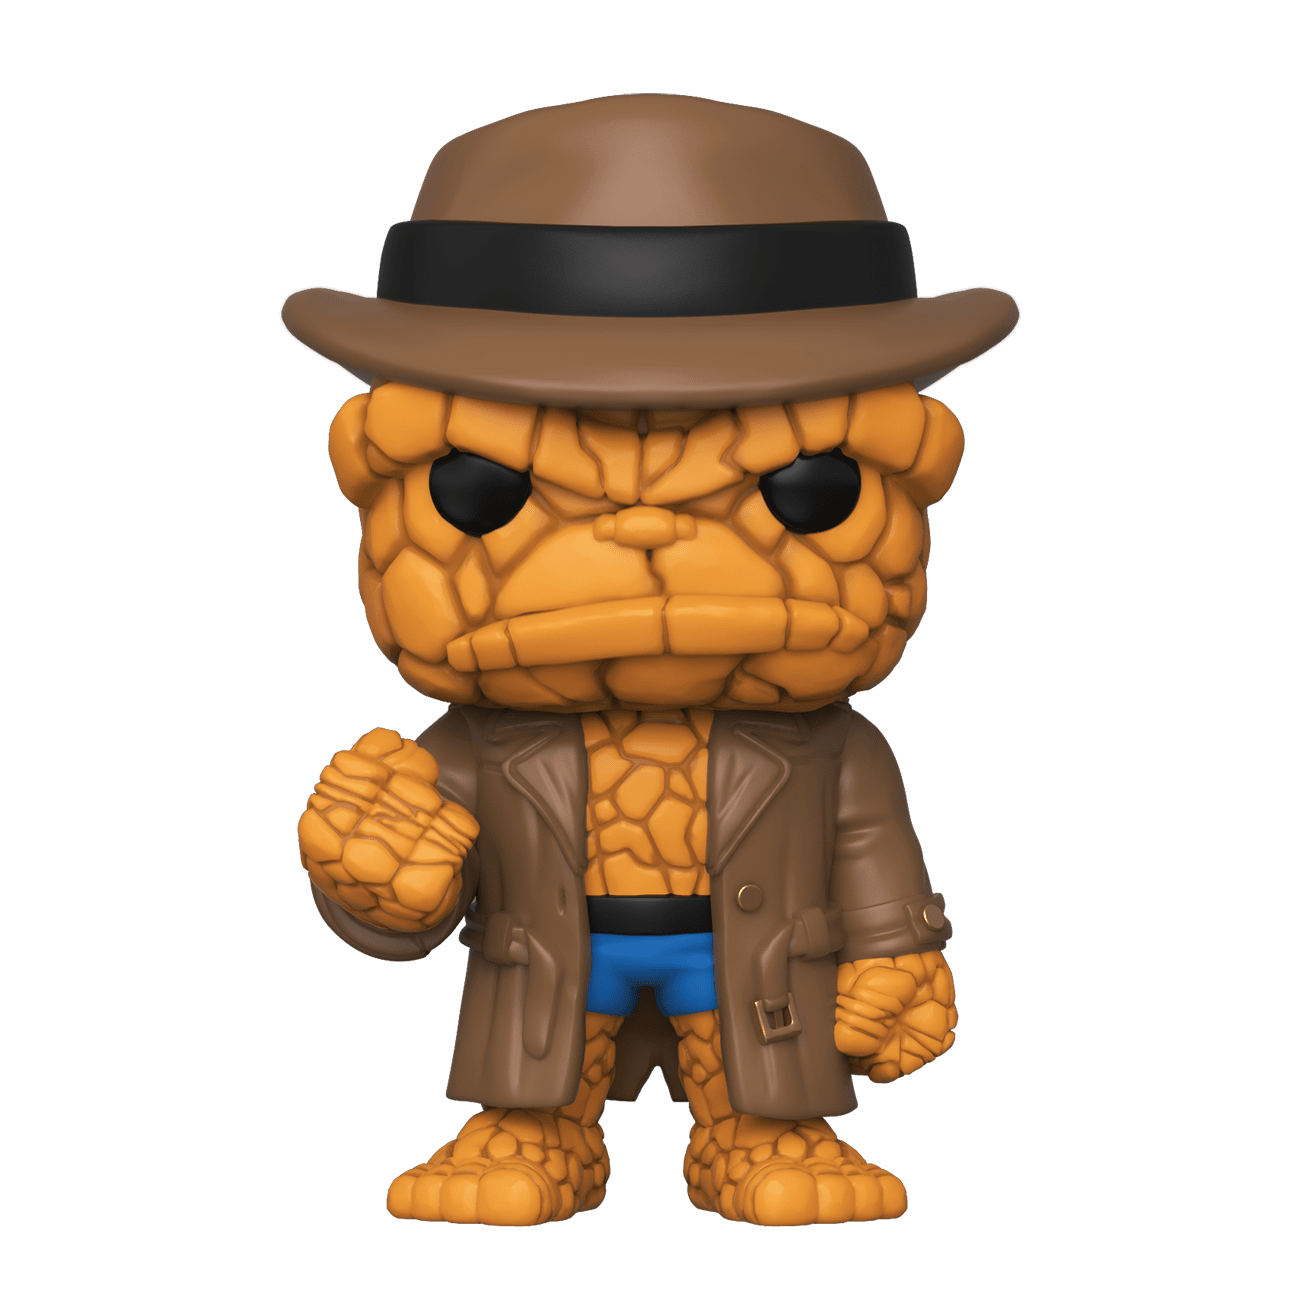 PRE-ORDER Marvel Fantastic The Thing in Disguise Exclusive Pop! Vinyl Figure